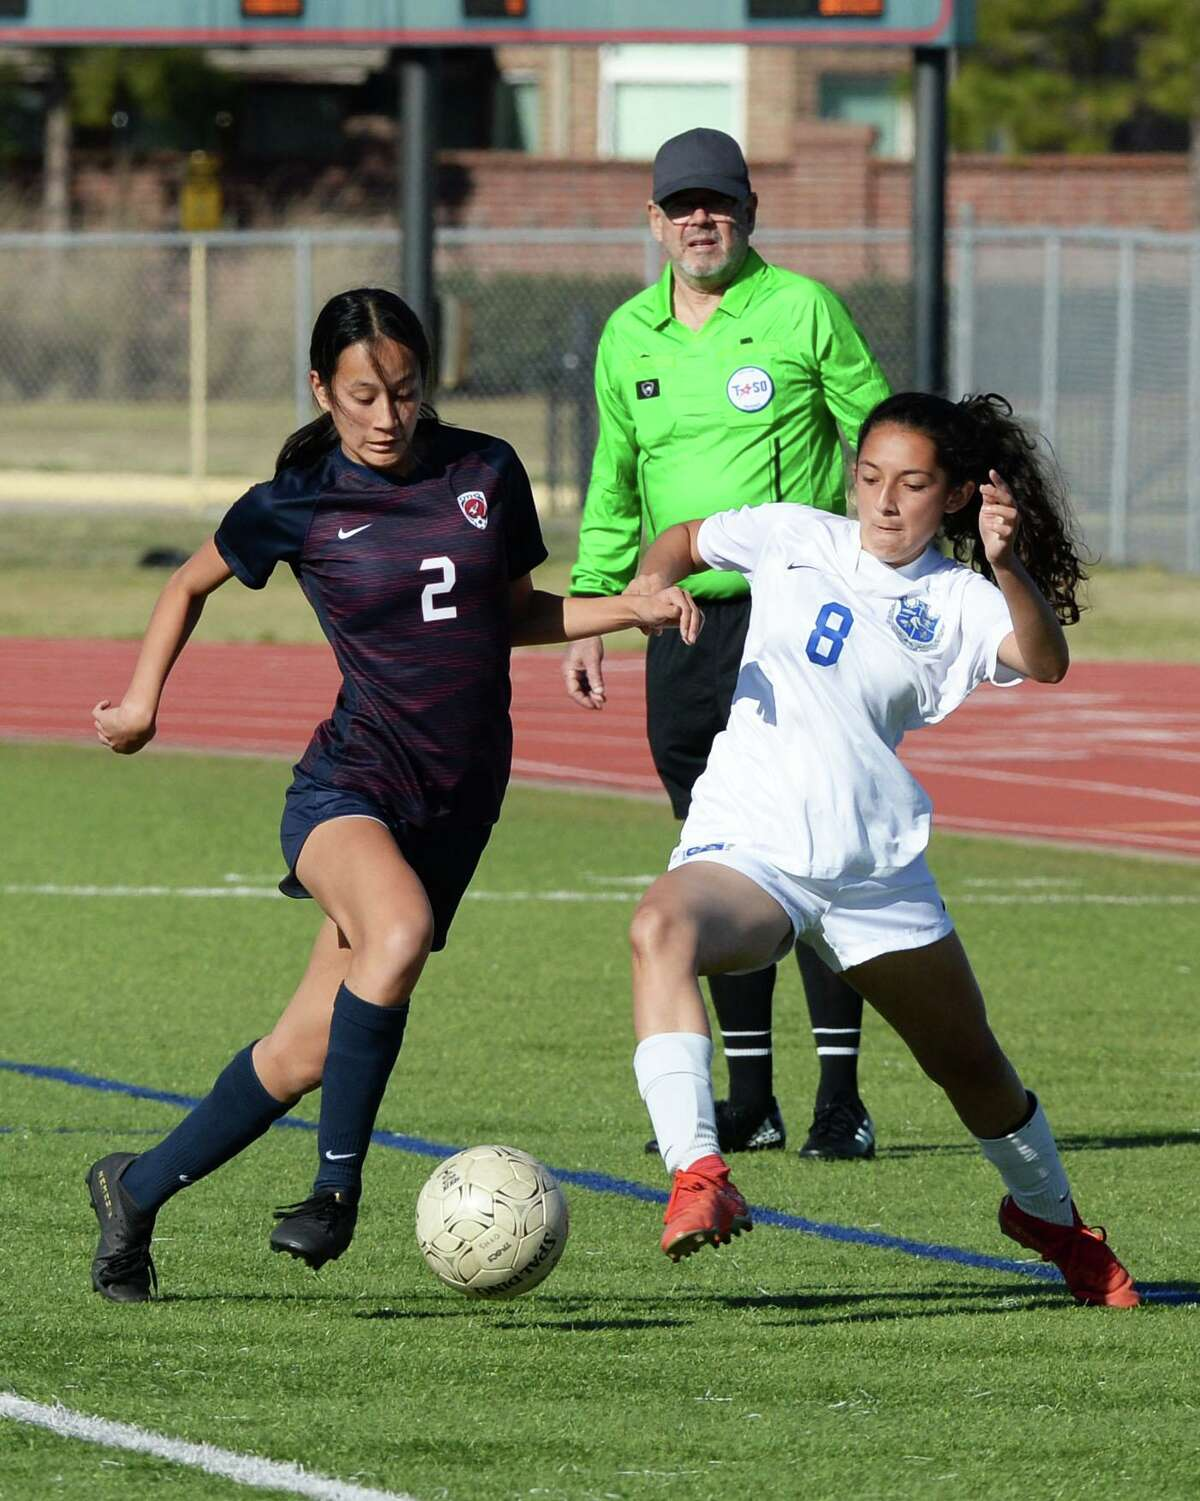 Sydney Nork (2) of Tompkins and Julie Vasquez (8) of Clear Springs compete for a ball during the second half of the girls soccer game in the I-10 Shootout Thursday in Katy.